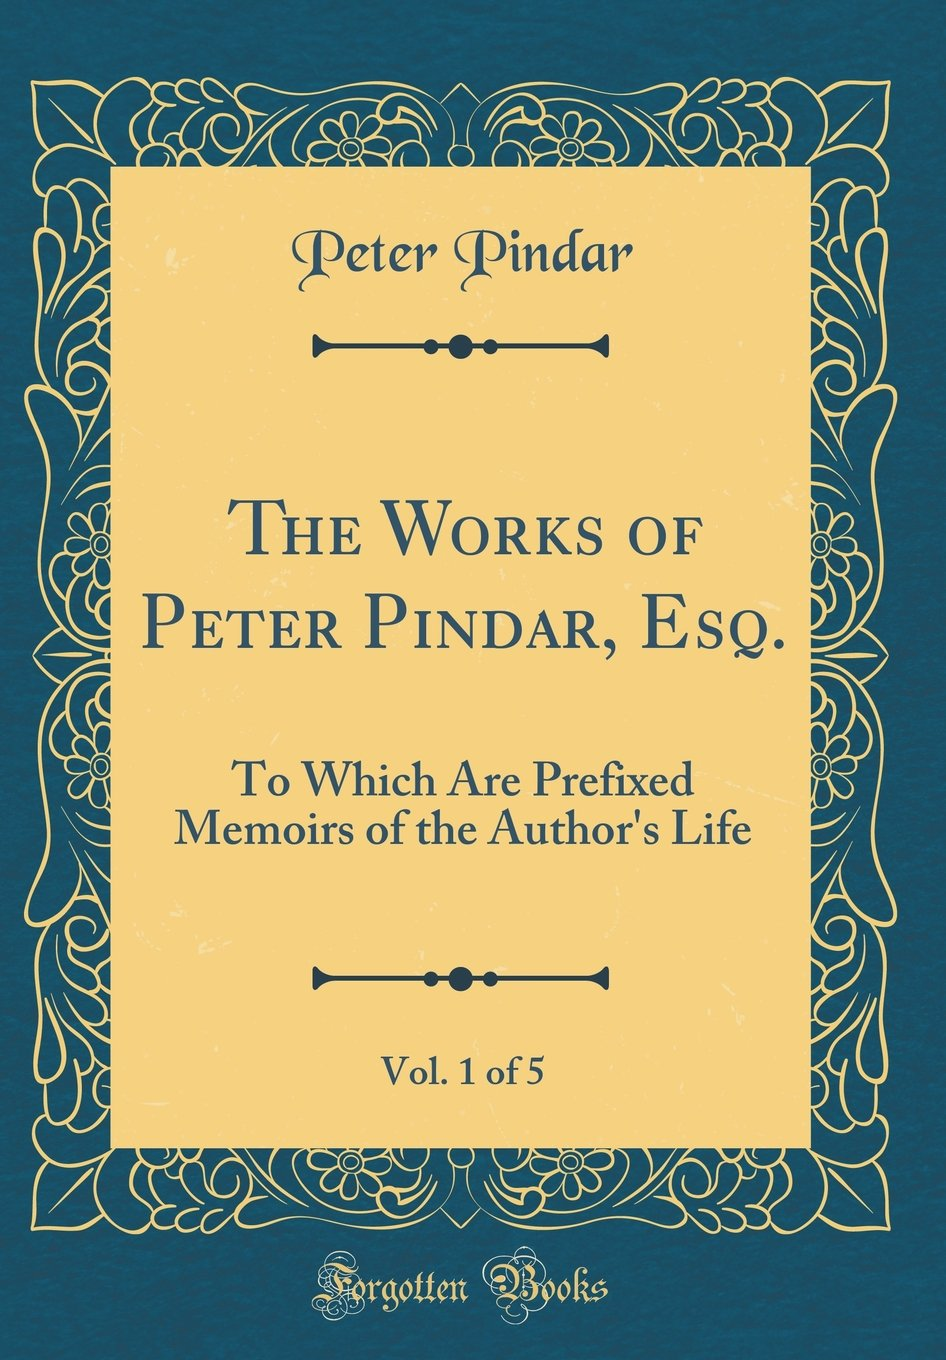 The Works of Peter Pindar, Esq., Vol. 1 of 5: To Which Are Prefixed Memoirs of the Author's Life (Classic Reprint) pdf epub